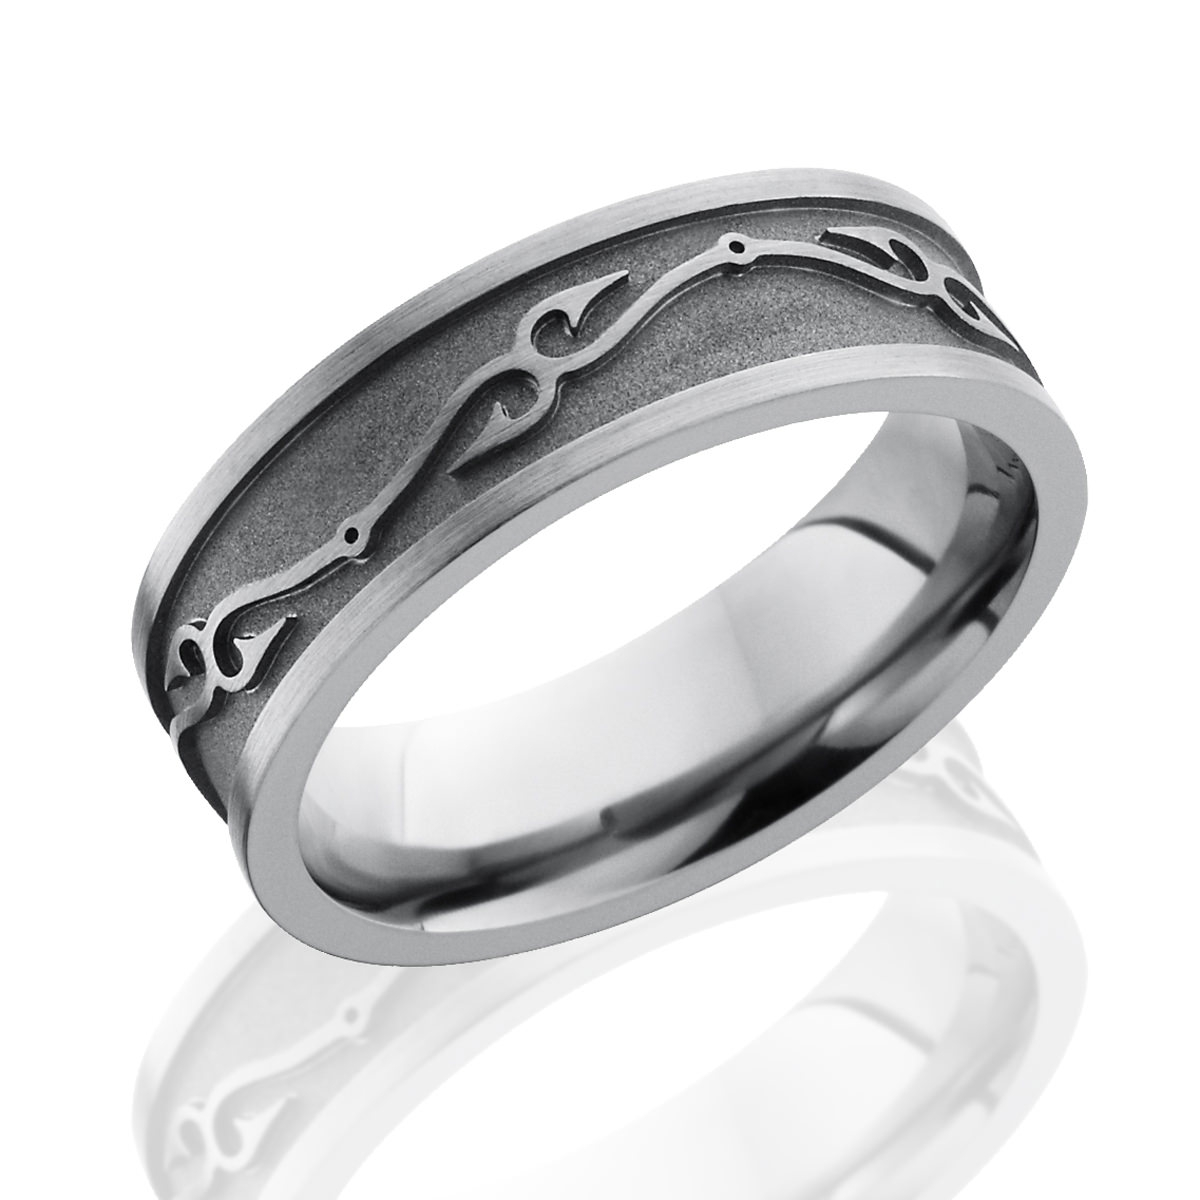 Fish Hook Titanium Wedding Band – Fishing Ring For Your Guy Within Fish Hook Wedding Rings (View 5 of 15)